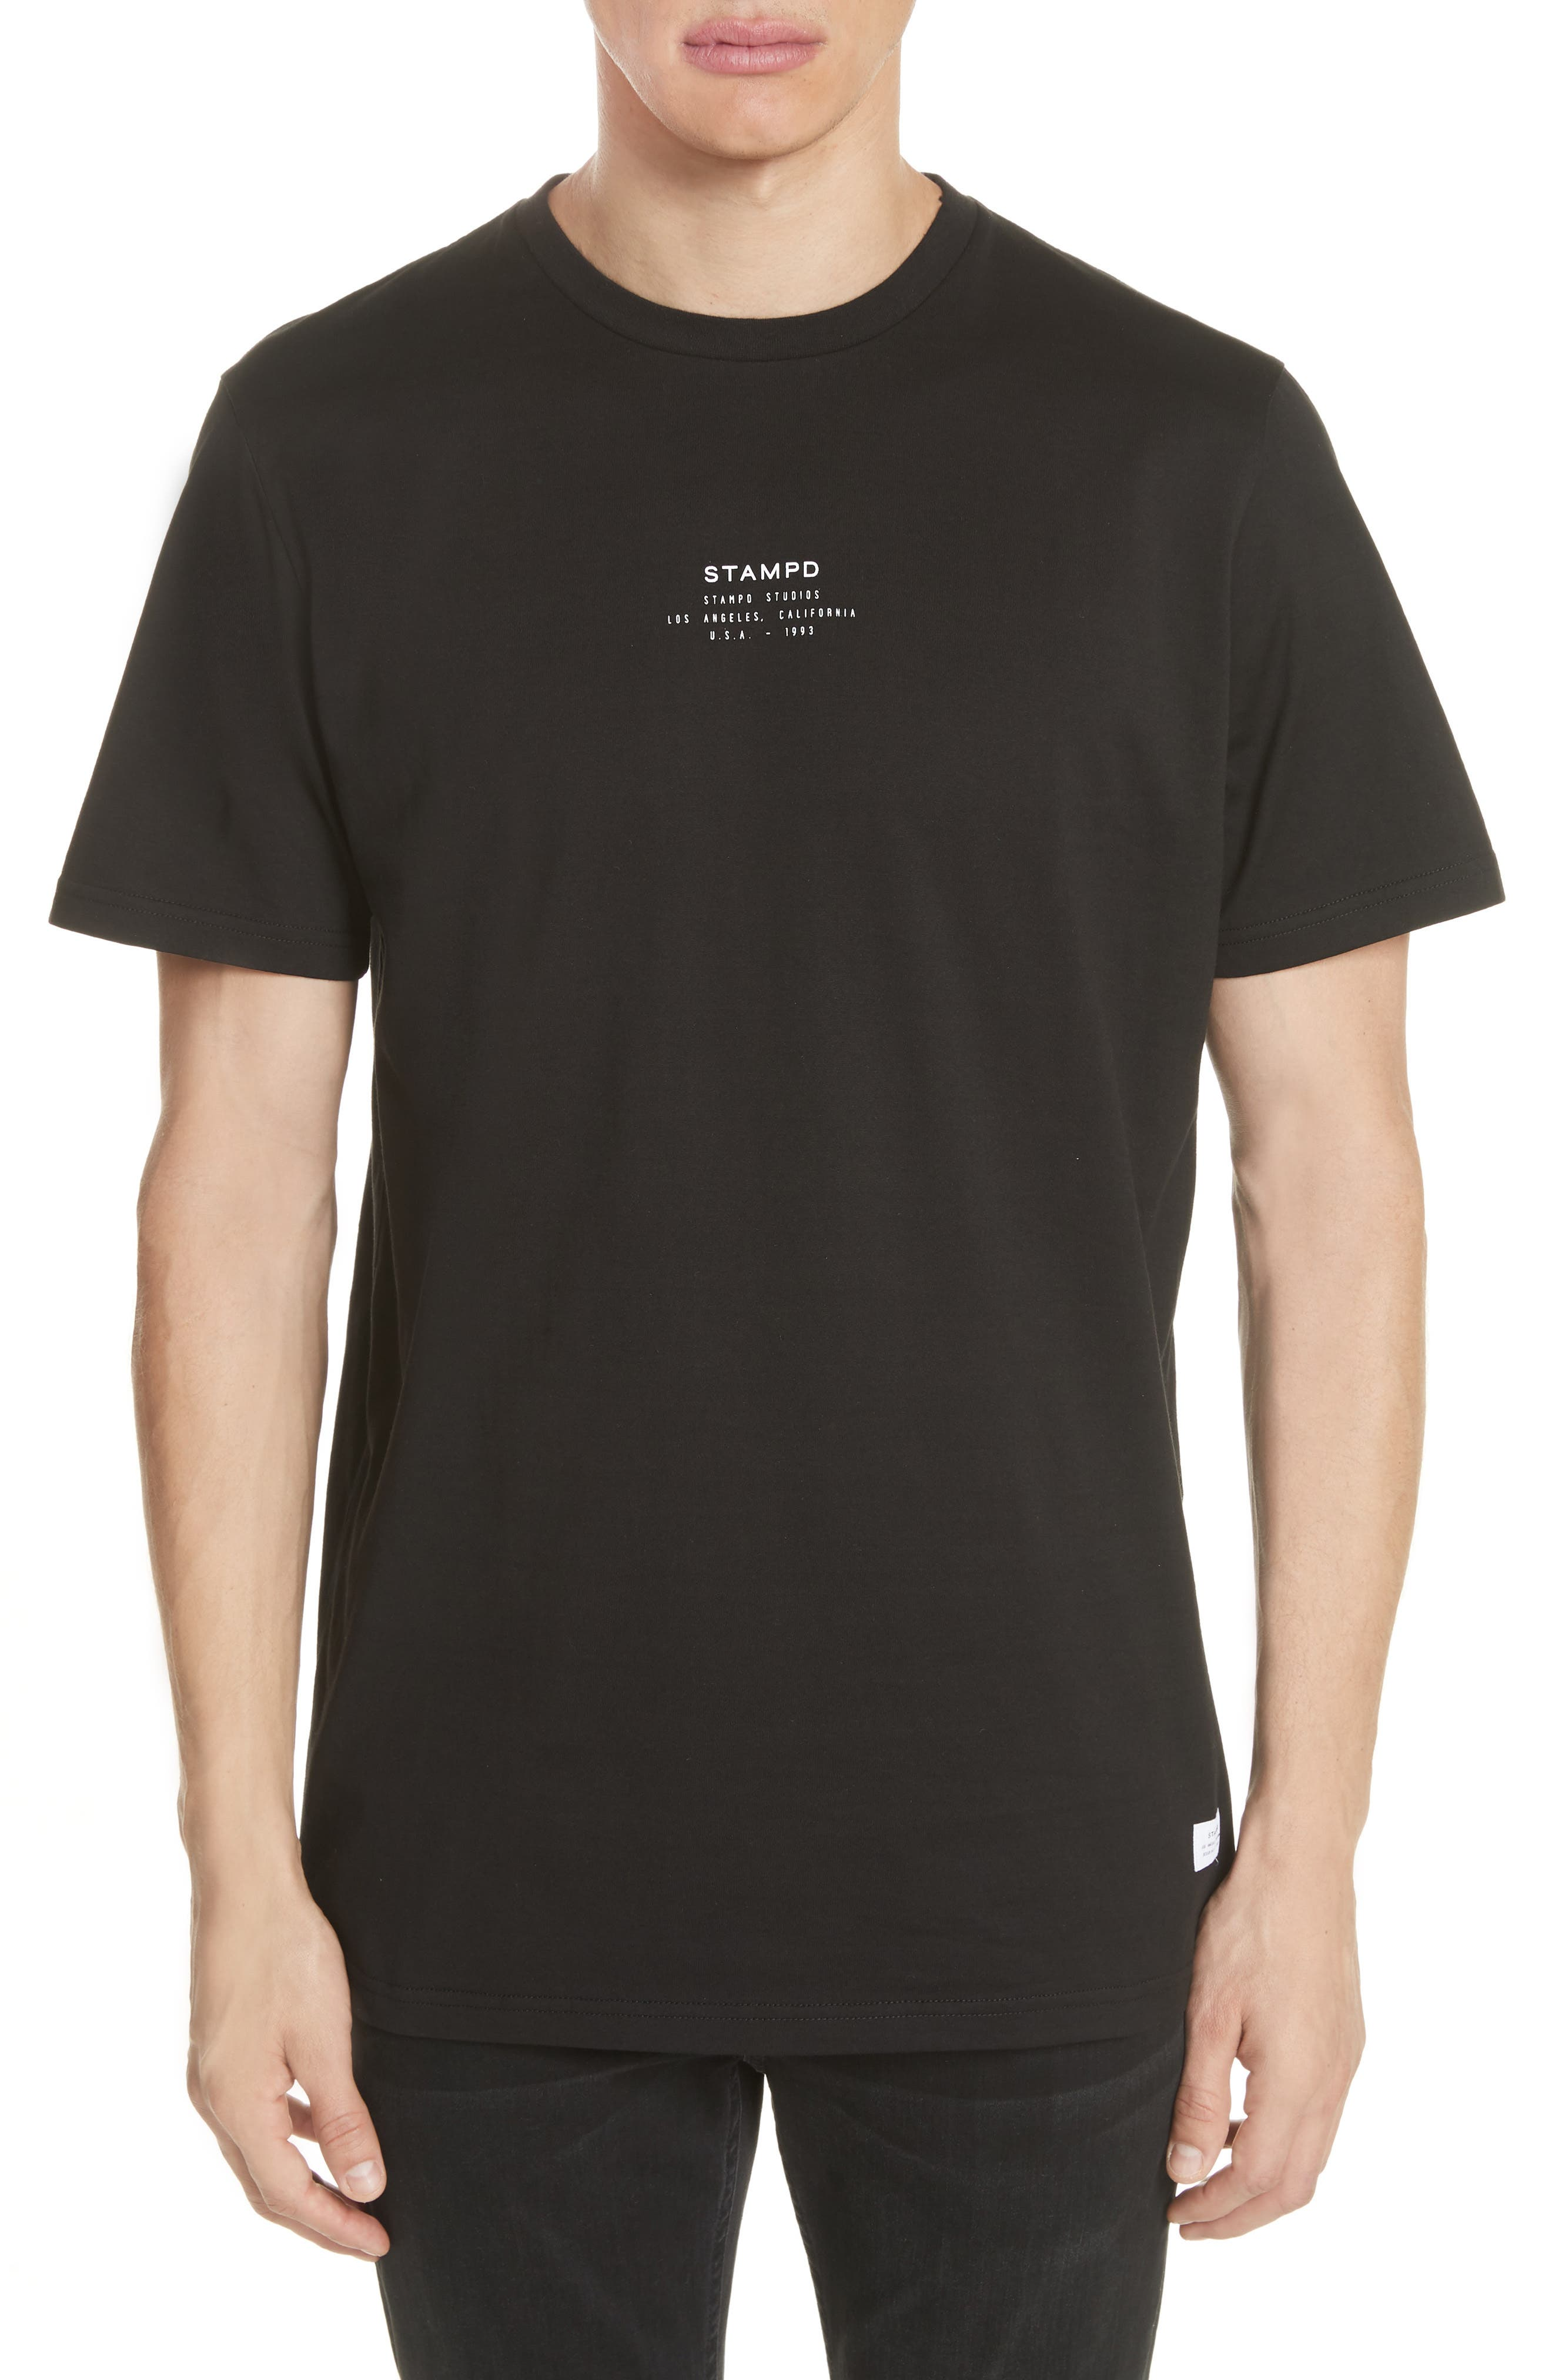 STAMPD Stacked Stamp Graphic T-Shirt